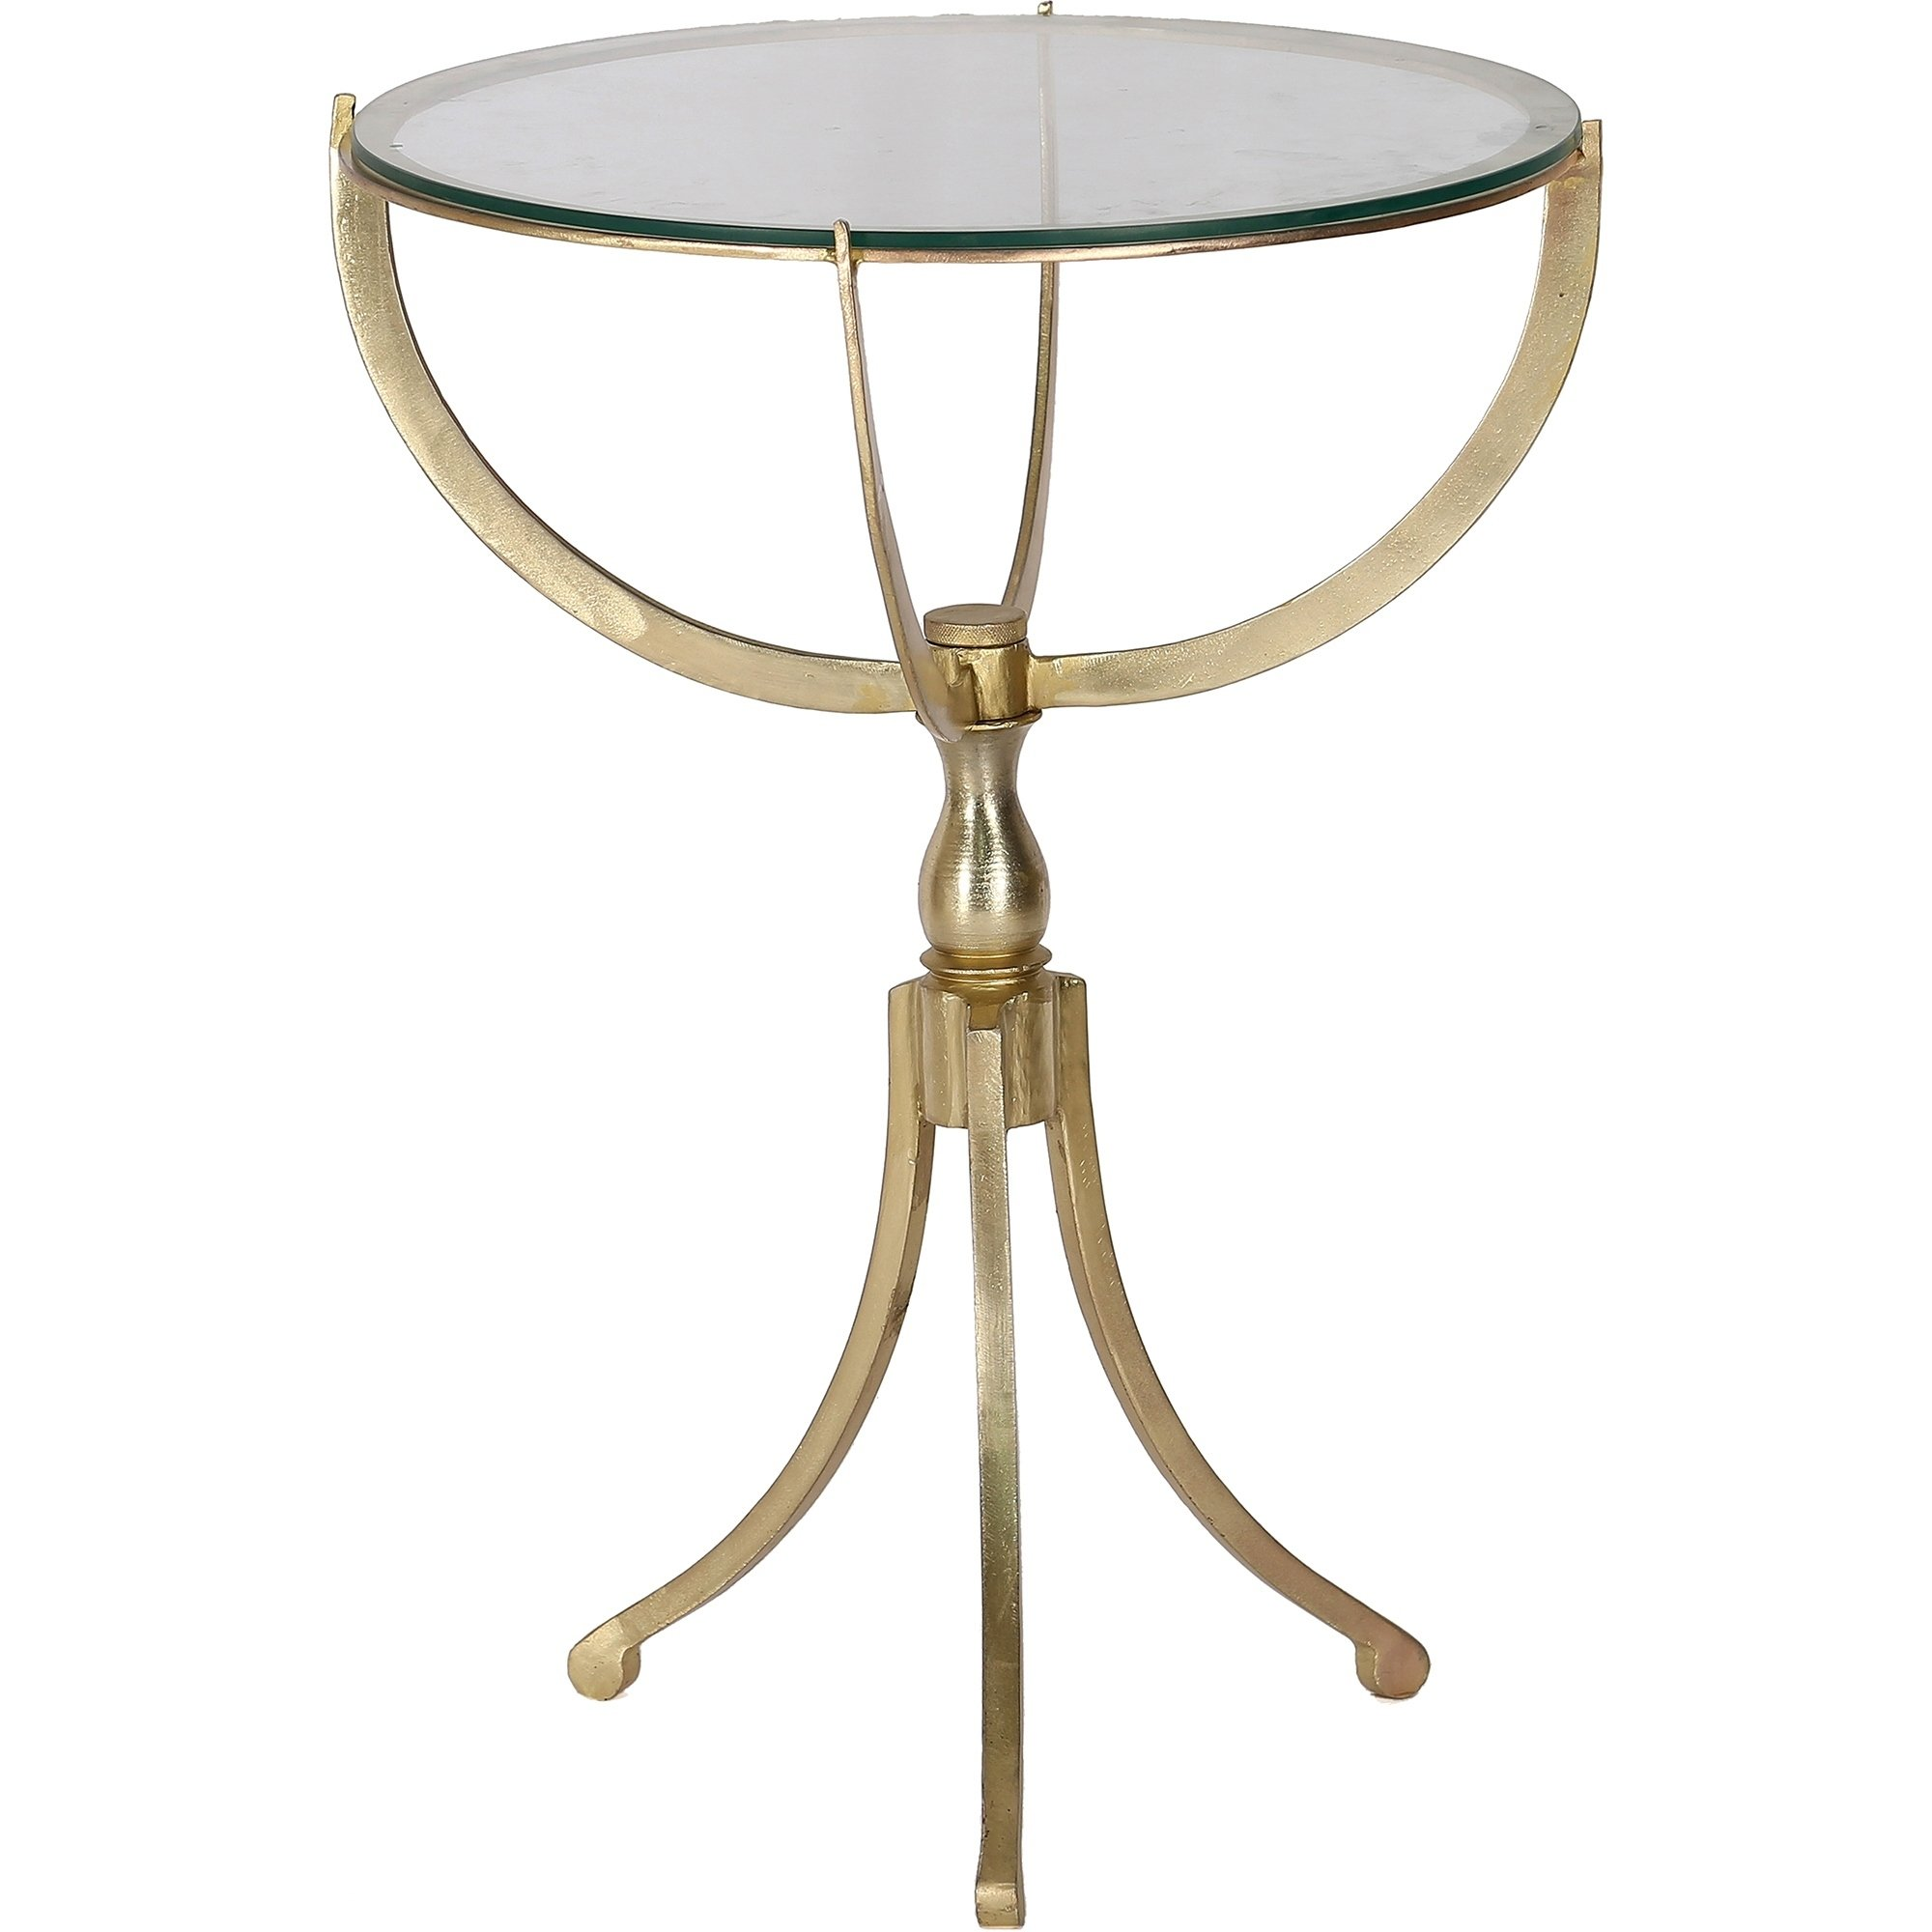 renwil gendey antique brass iron glass accent table and free shipping today white gold lamp marble top occasional tables west elm mid century gaming dock dining set mosaic garden